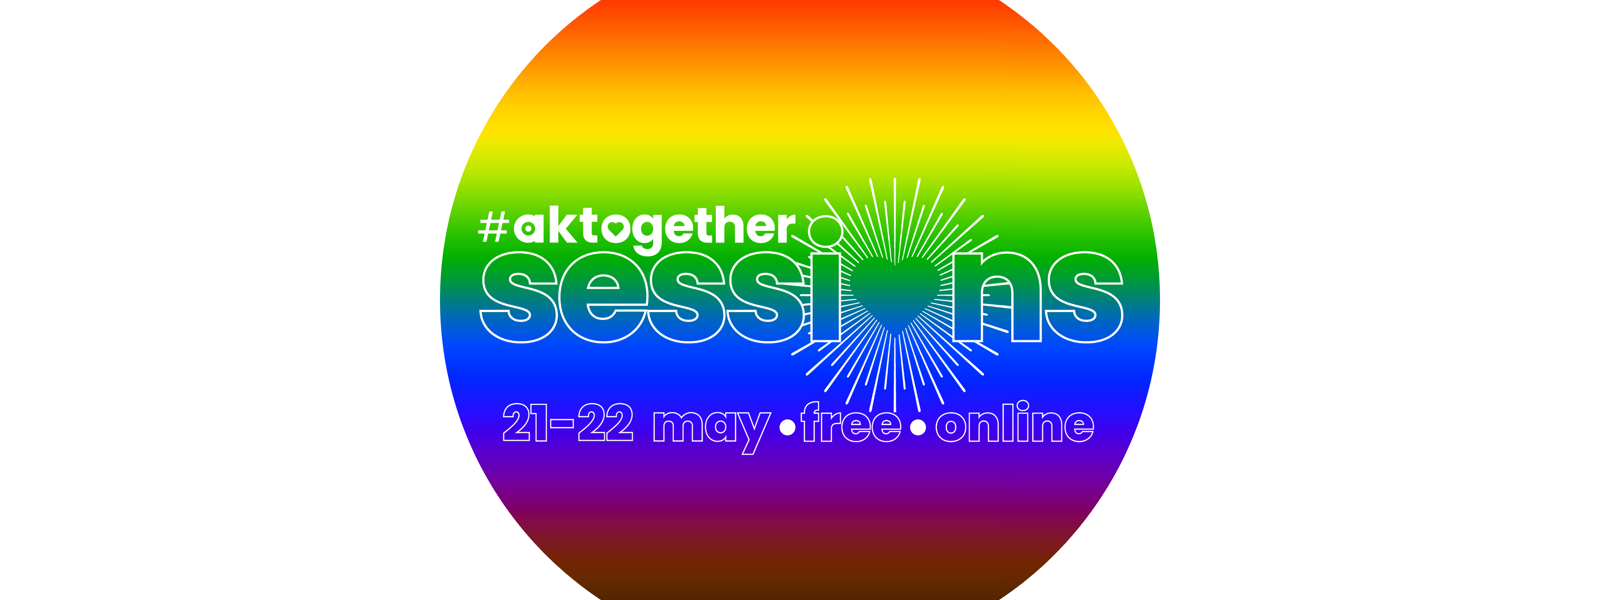 aktogether sessions bringing together LGBTQ+ music comedy art and drag from across the UK and raising funds for young LGBTQ+ people facing homelessness